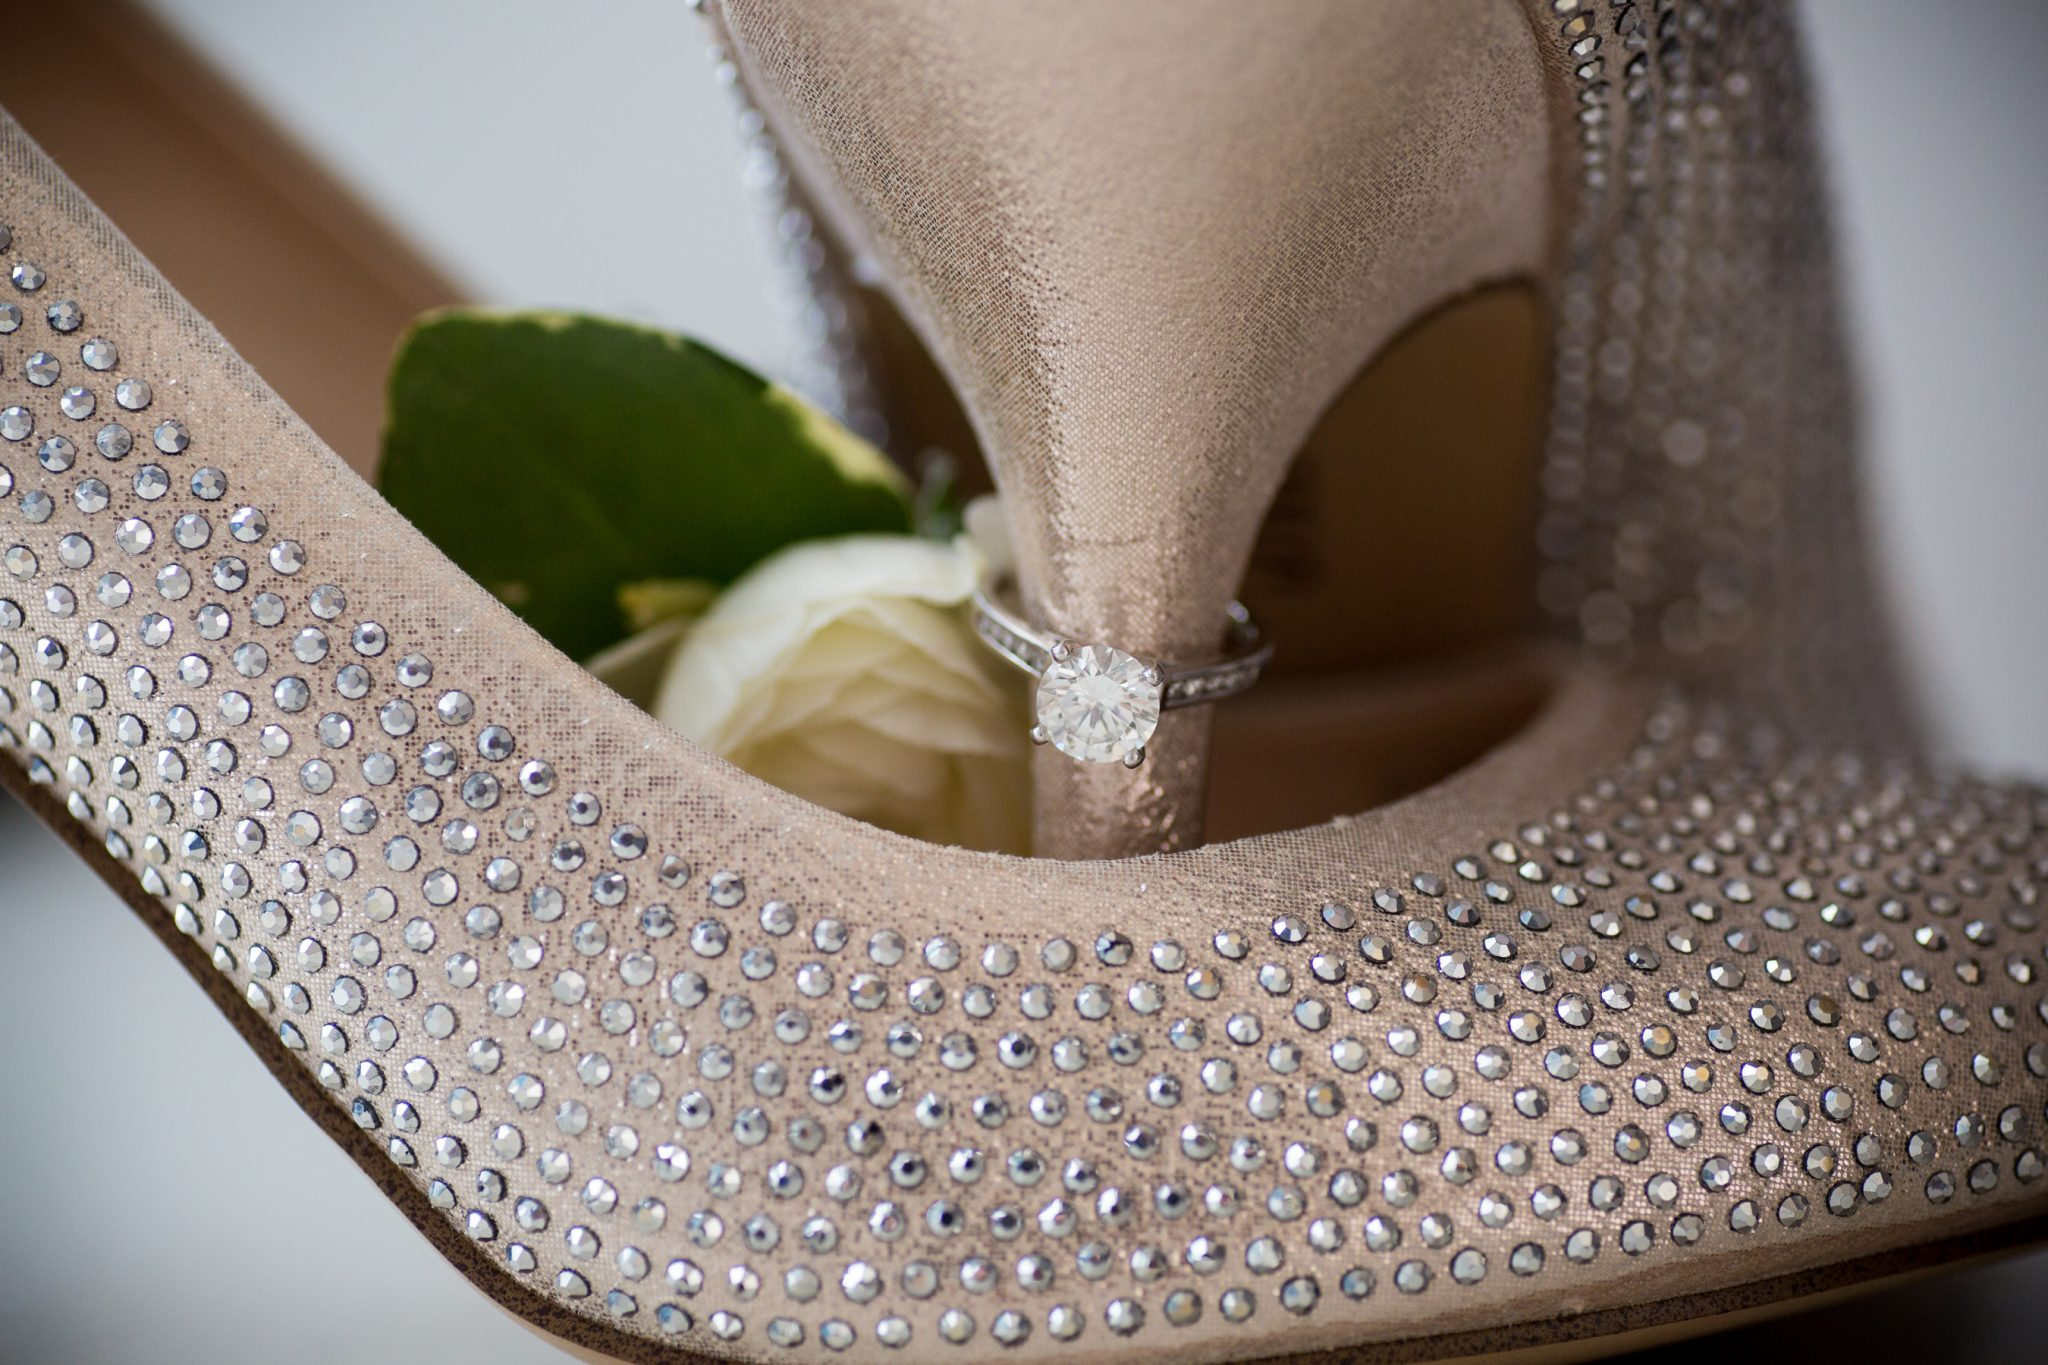 Engagement solitaire on bride's wedding shoes